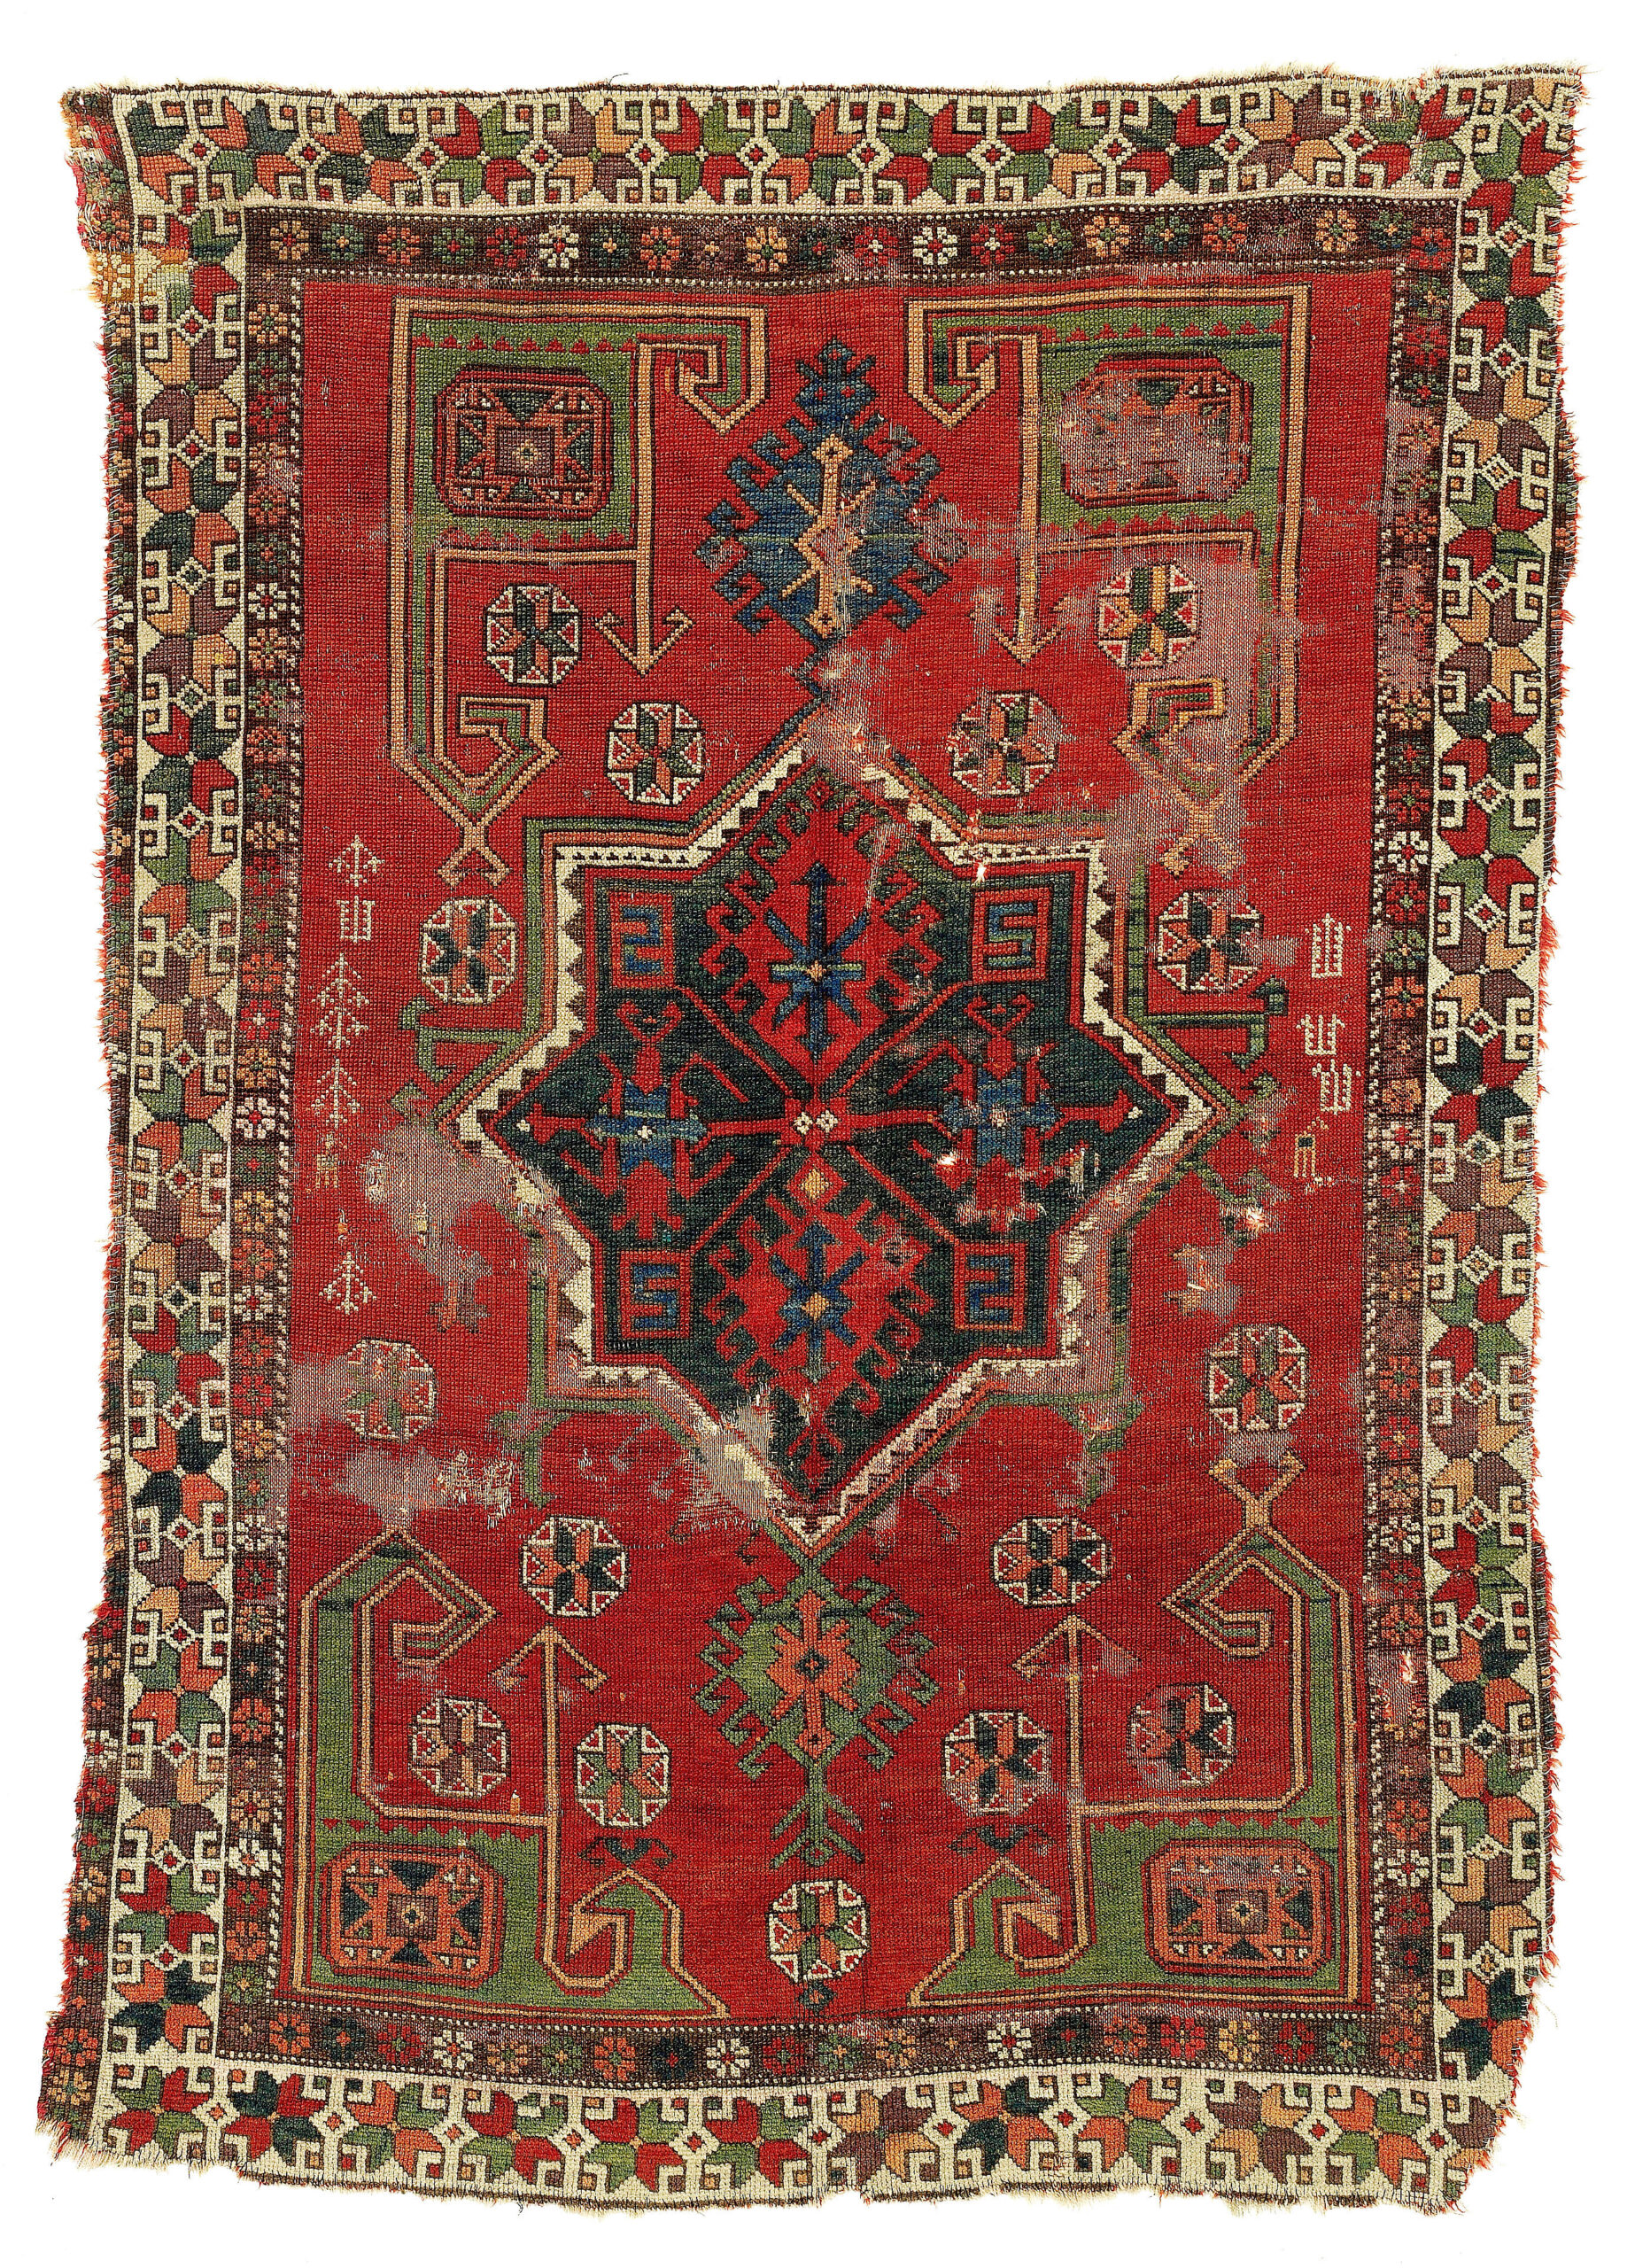 17th-18th entury carpet from Konya, Central Anatolia